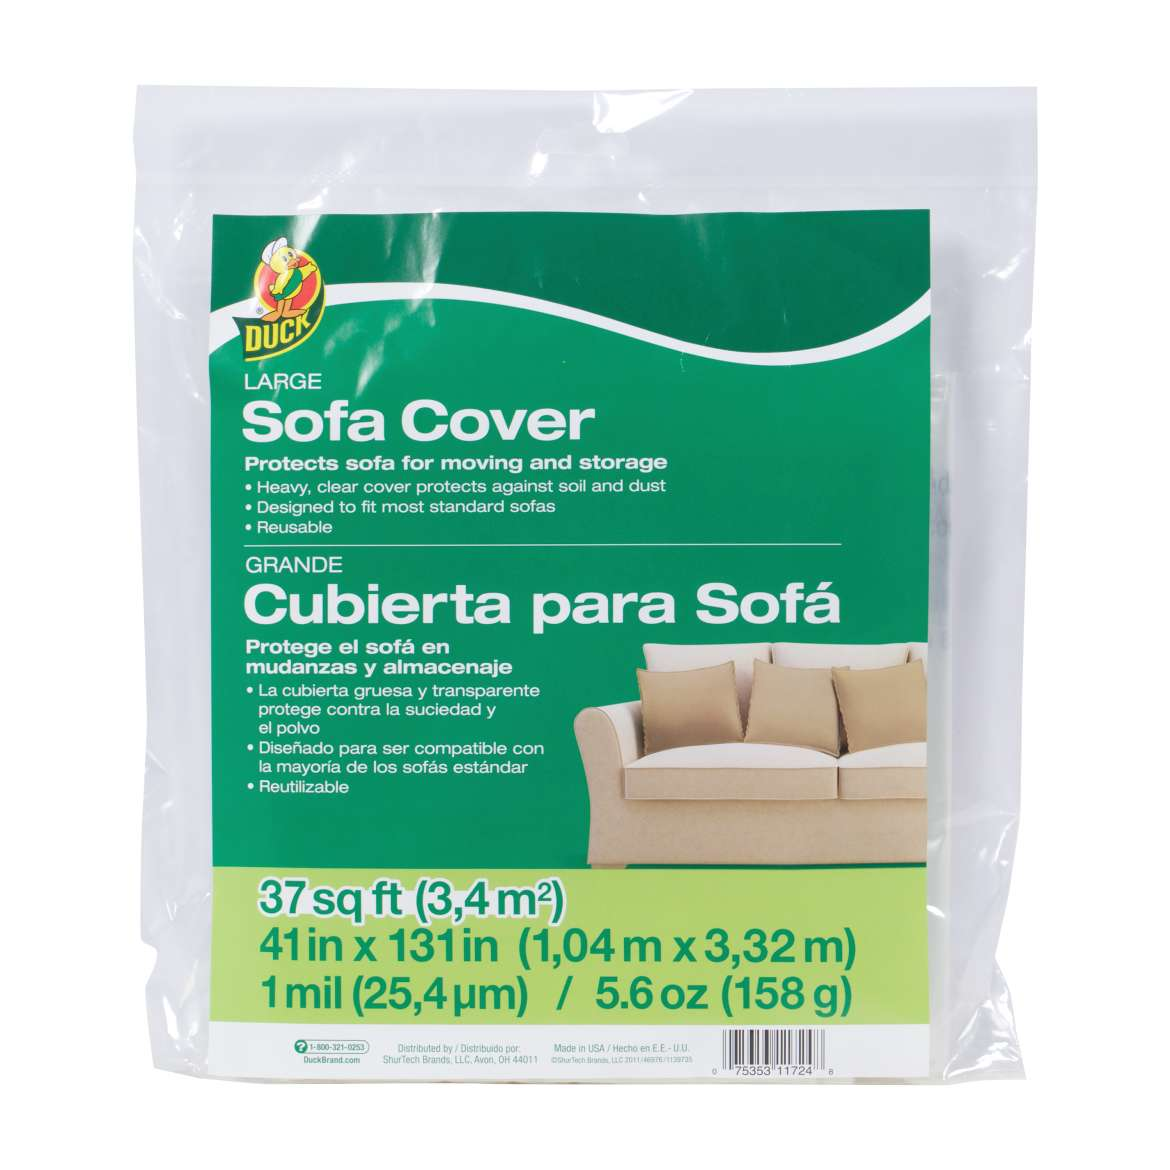 Large Sofa Cover